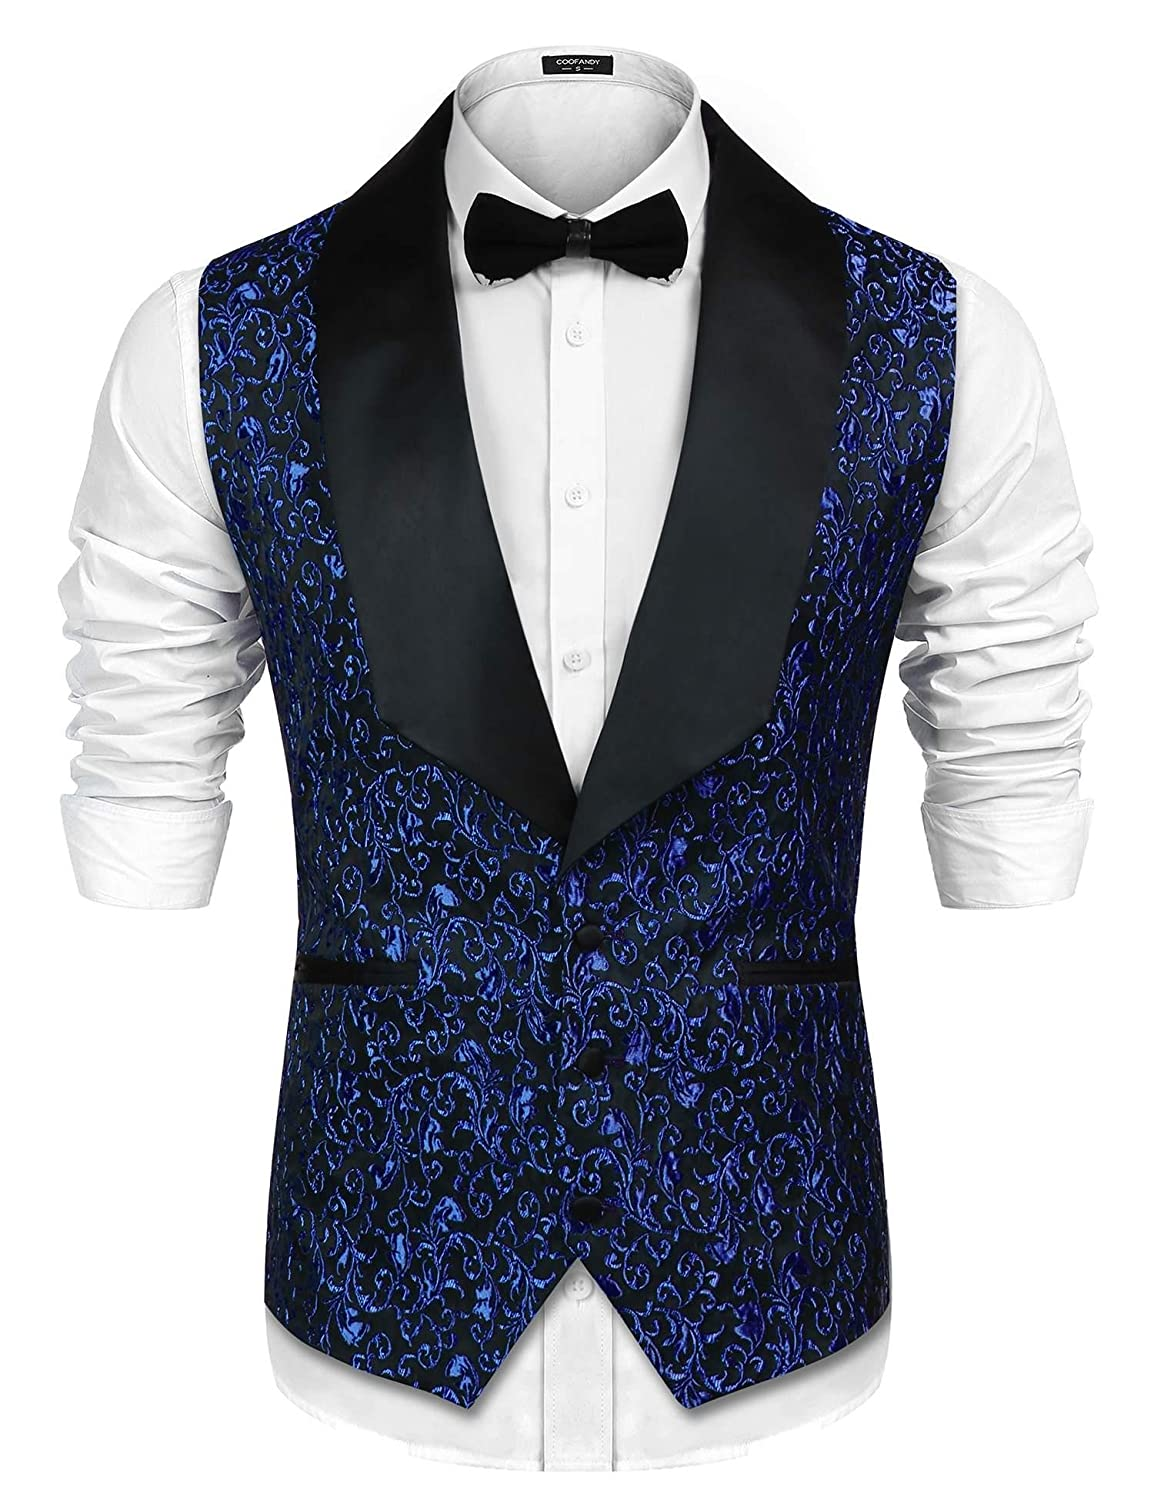 COOFANDY Men Floral Party Tuxedo Vest V-Neck Slim Fit Dress Suit Vest Waistcoat ETJ007203